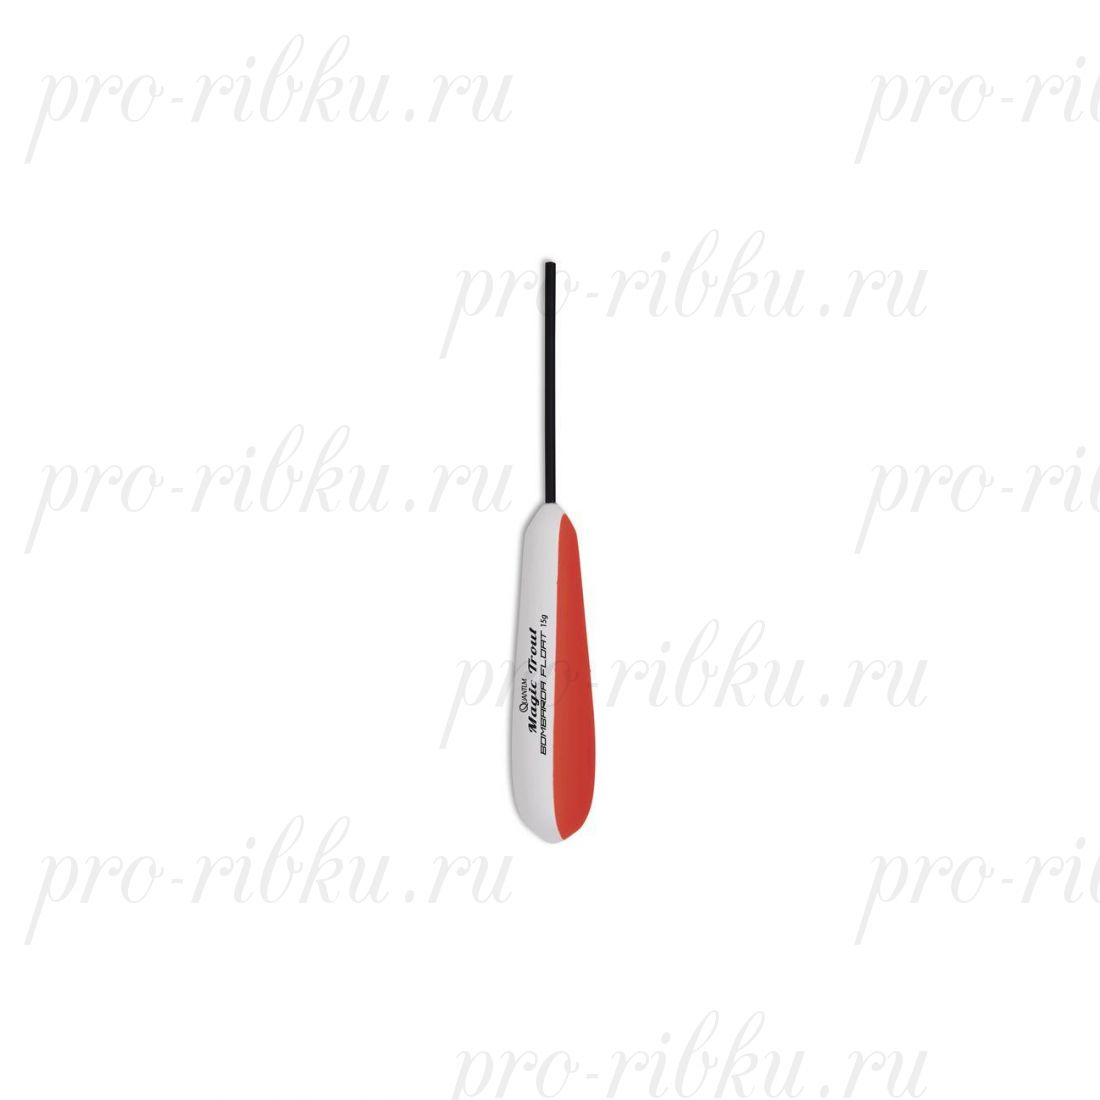 Бомбарда Quantum Bombarda Float 25g 1cont white/red